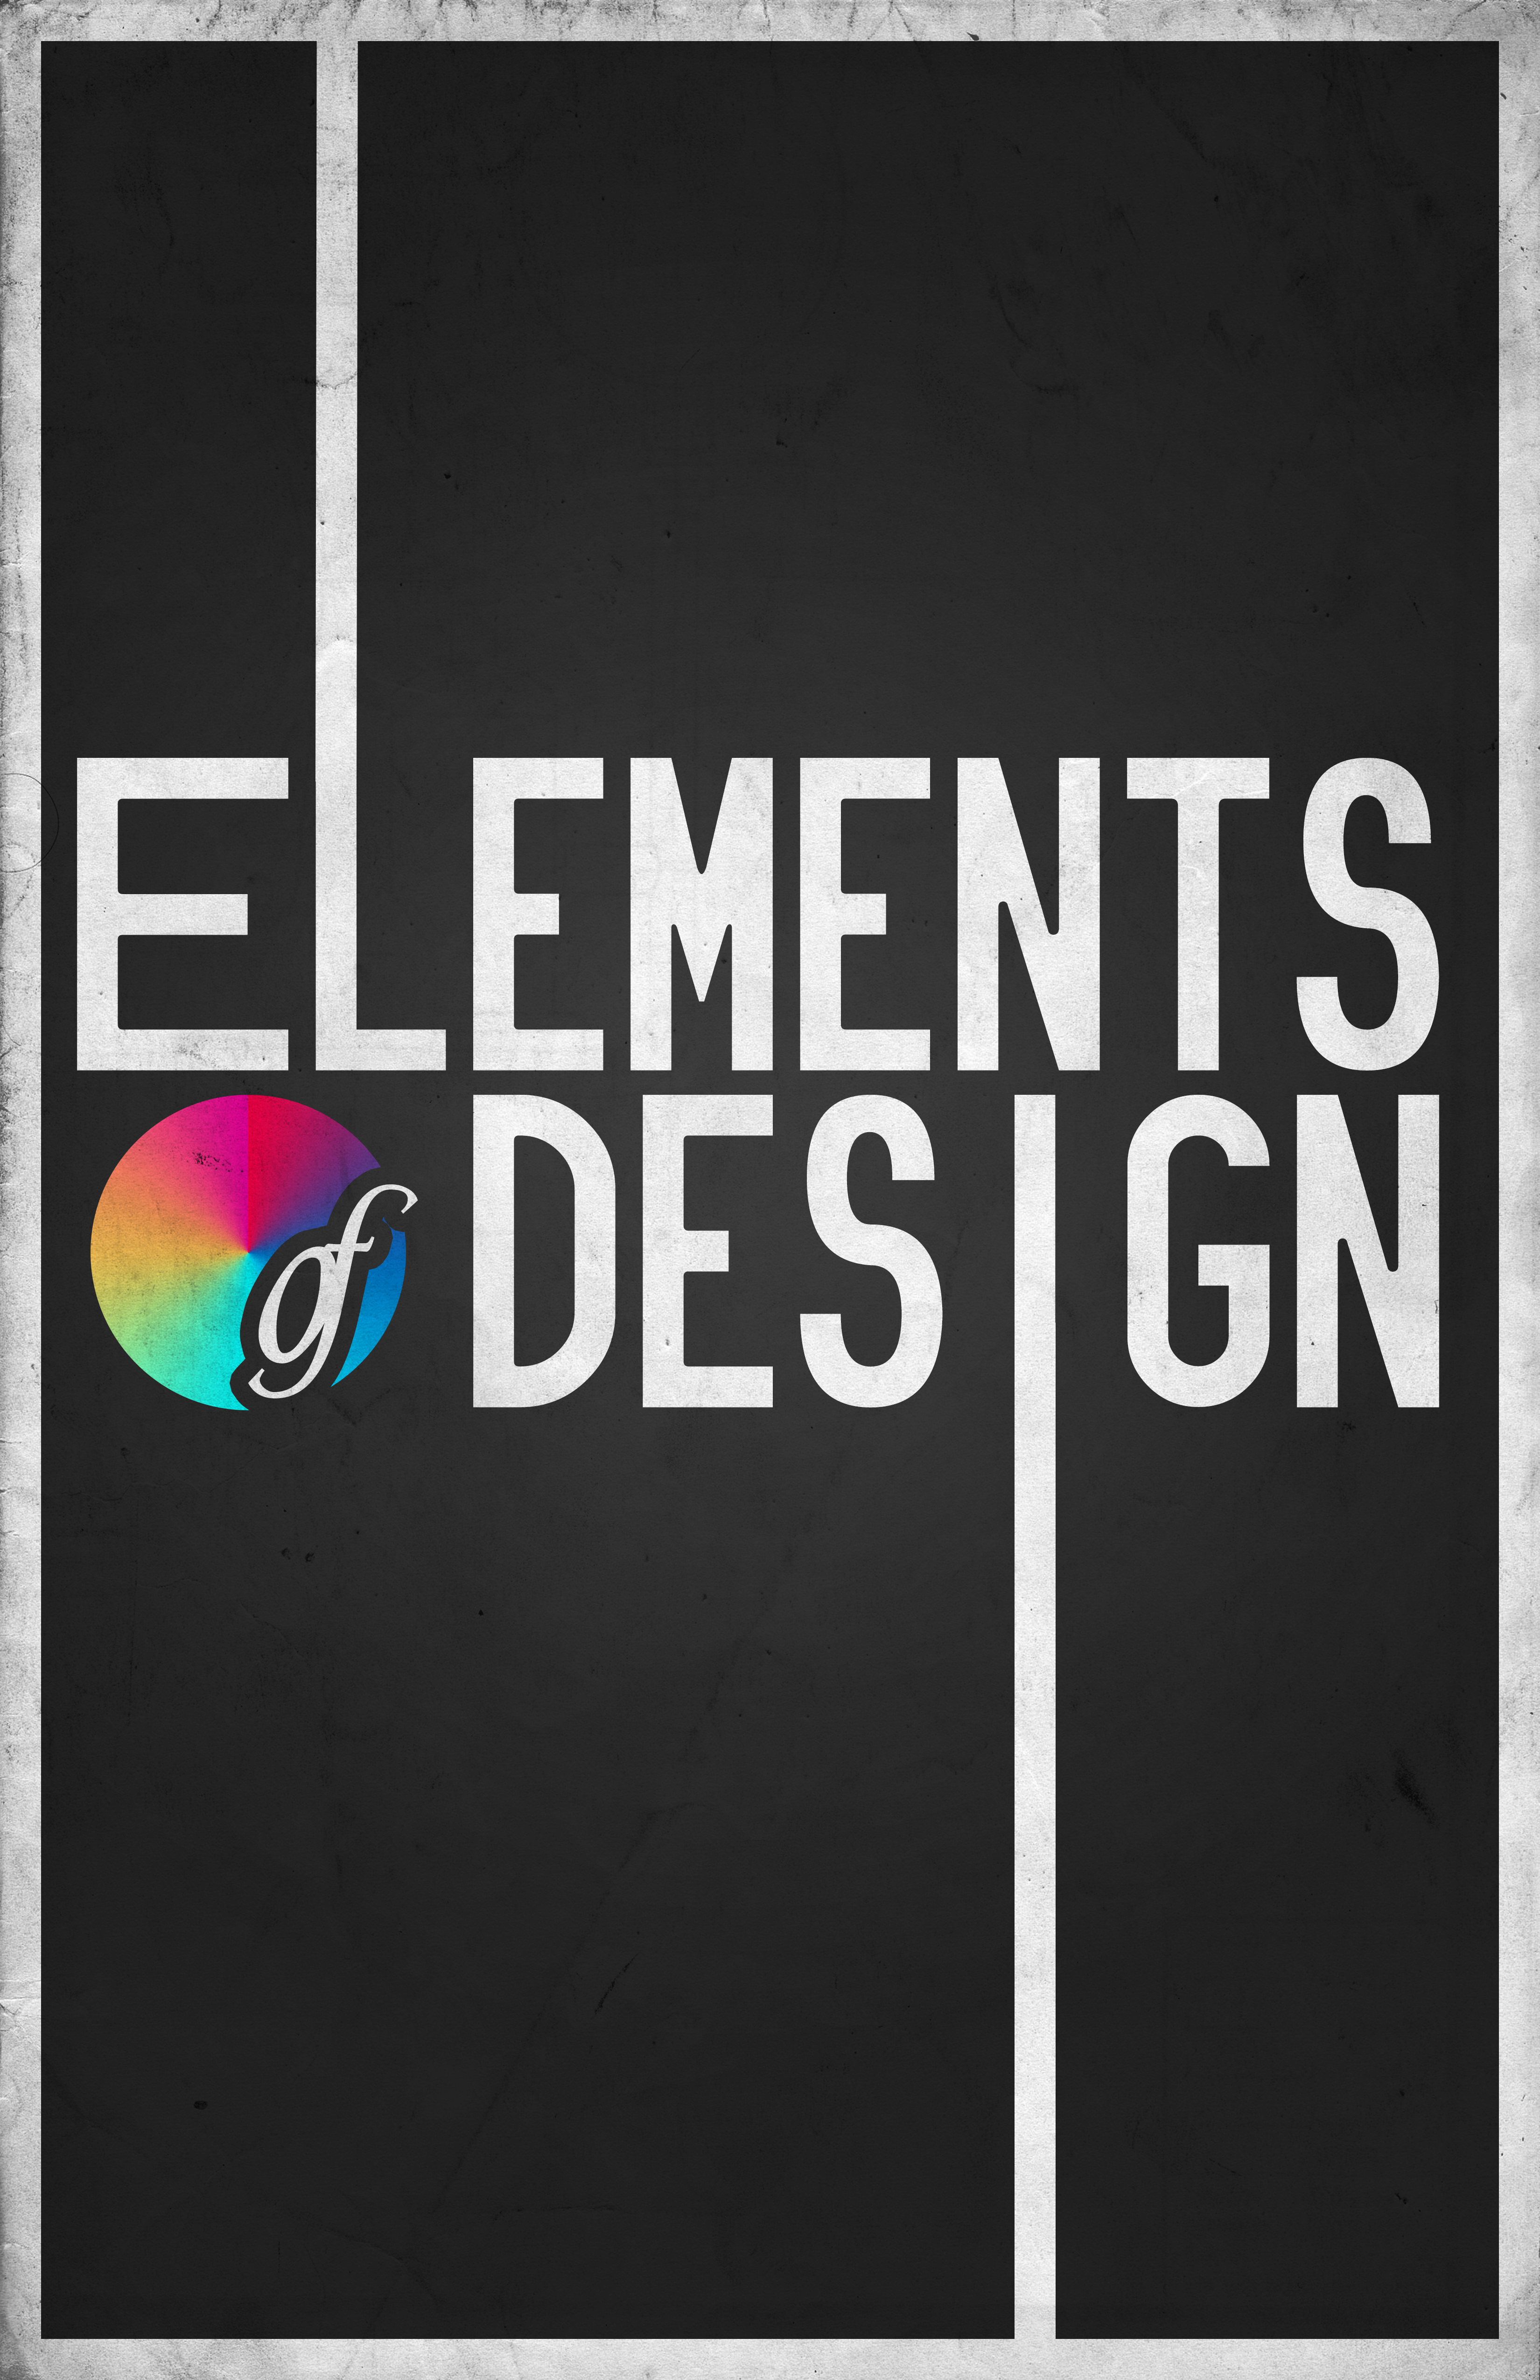 Poster design elements - Elements Of Design Poster By Shesta713 Elements Of Design Poster By Shesta713